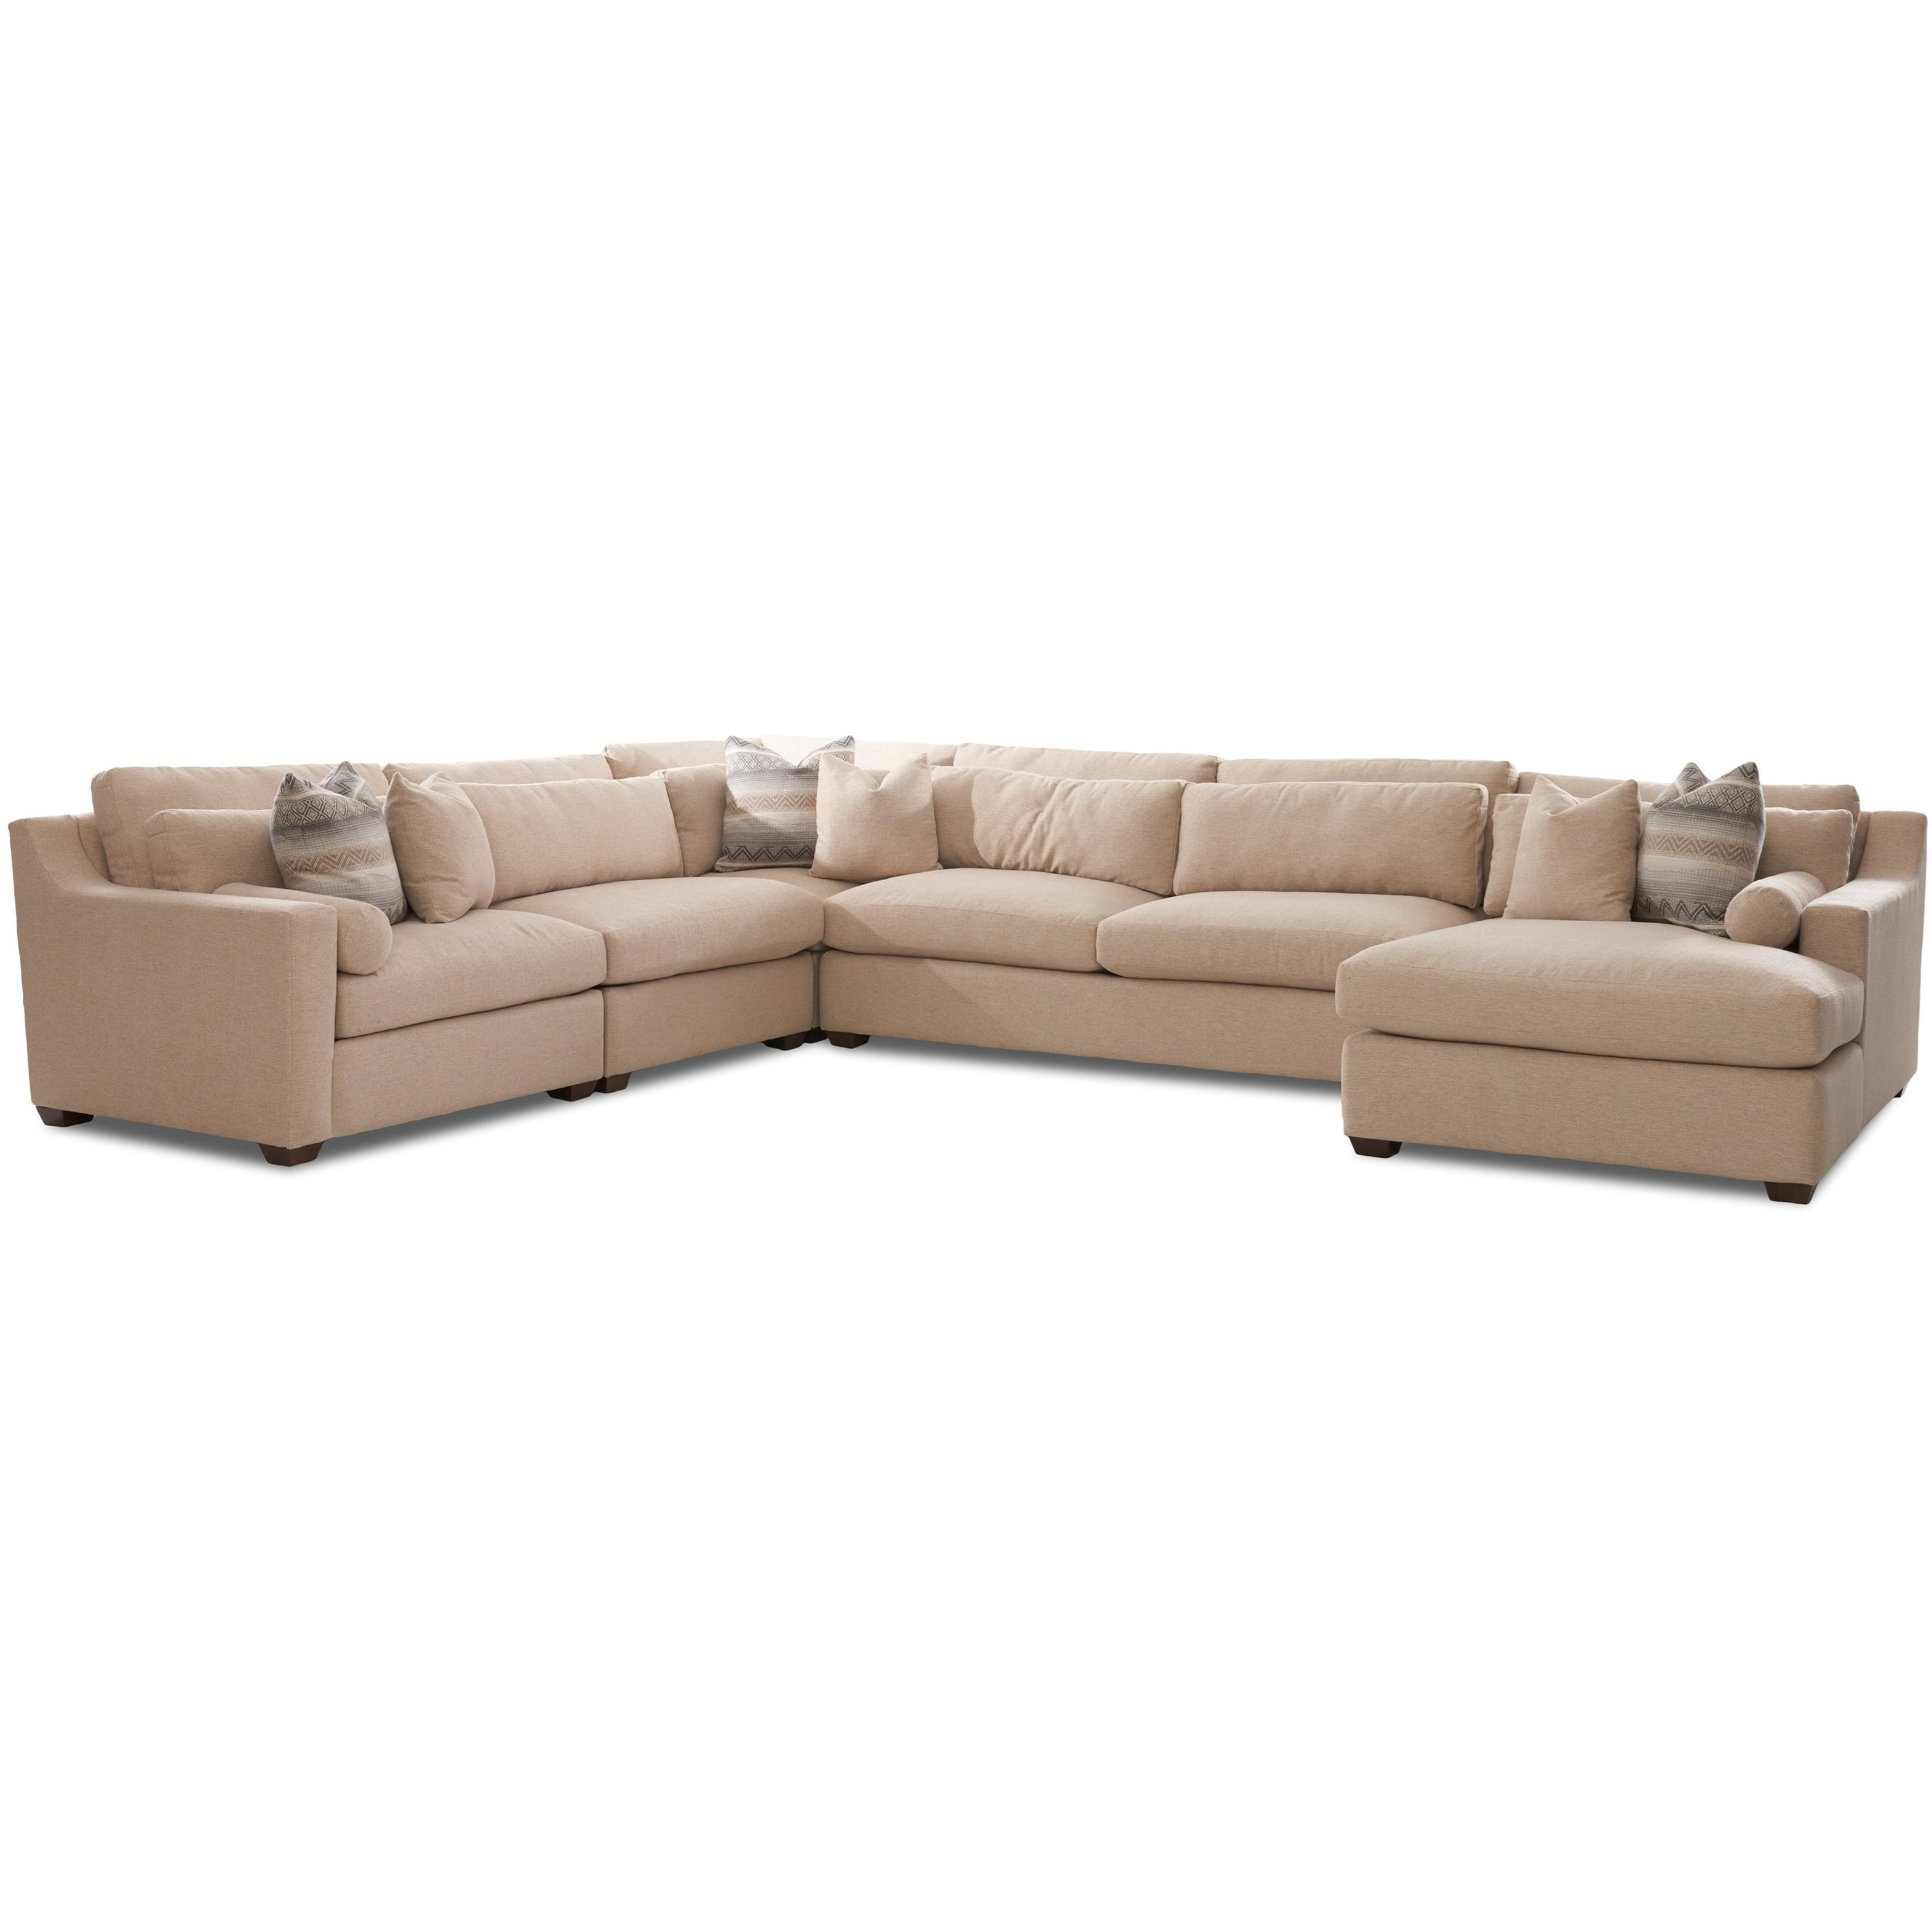 Klaussner Roan Contemporary Sofa Sectional With Right Facing Chaise Lounge Wayside Furniture Sectional Sofas